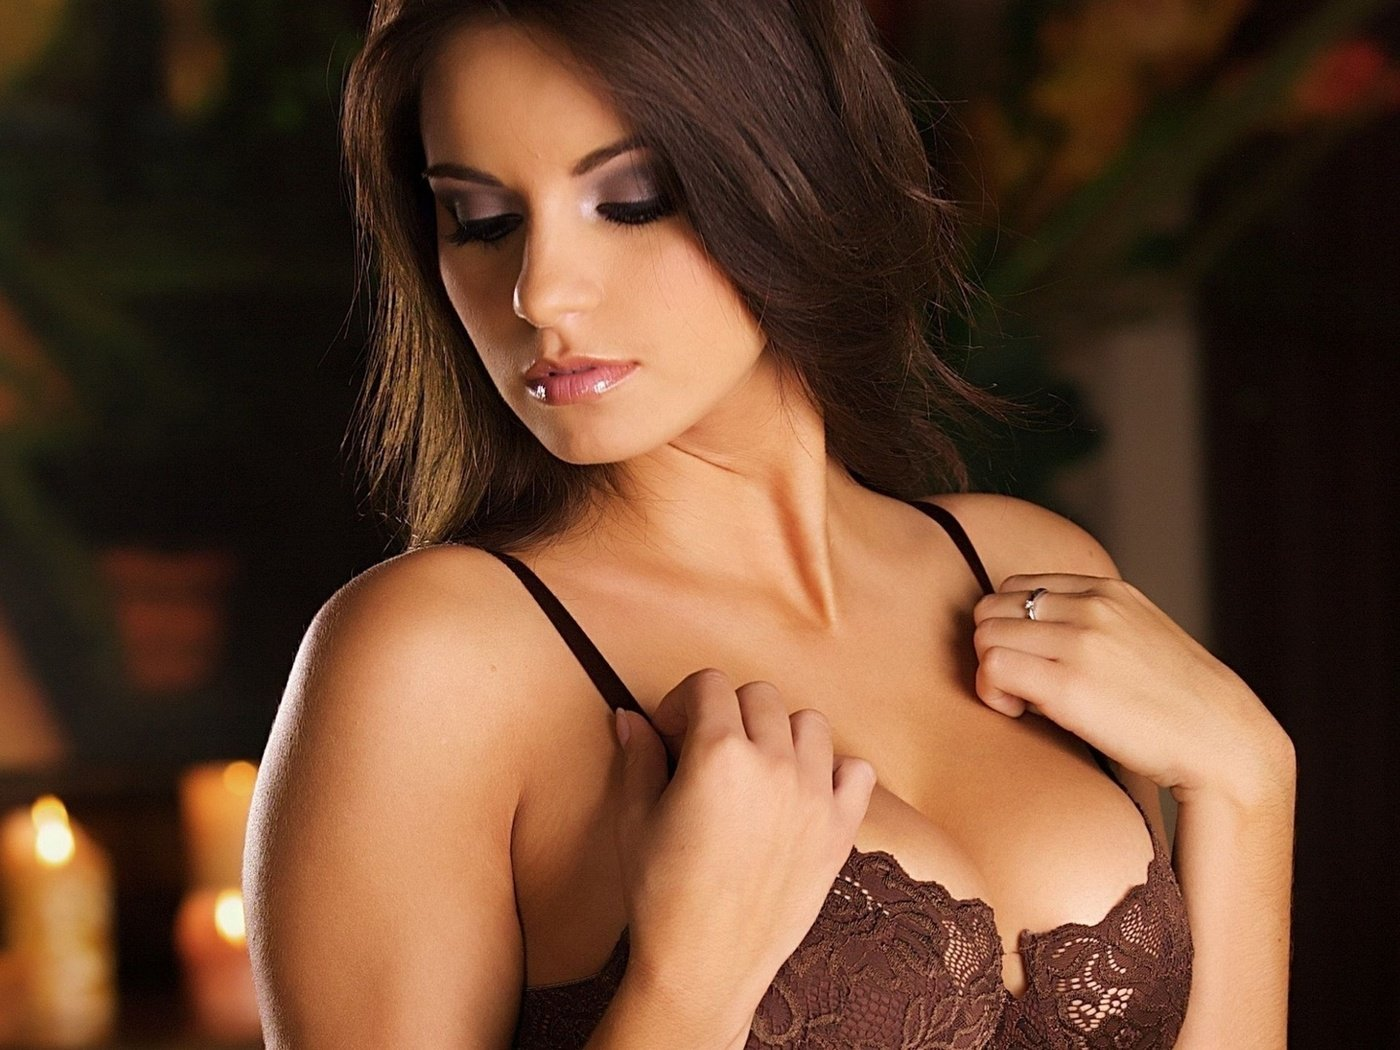 brest girls Find breast nipple stock images in hd and millions of other royalty-free stock photos, illustrations, and vectors in the shutterstock collection thousands of new, high-quality pictures added every day.